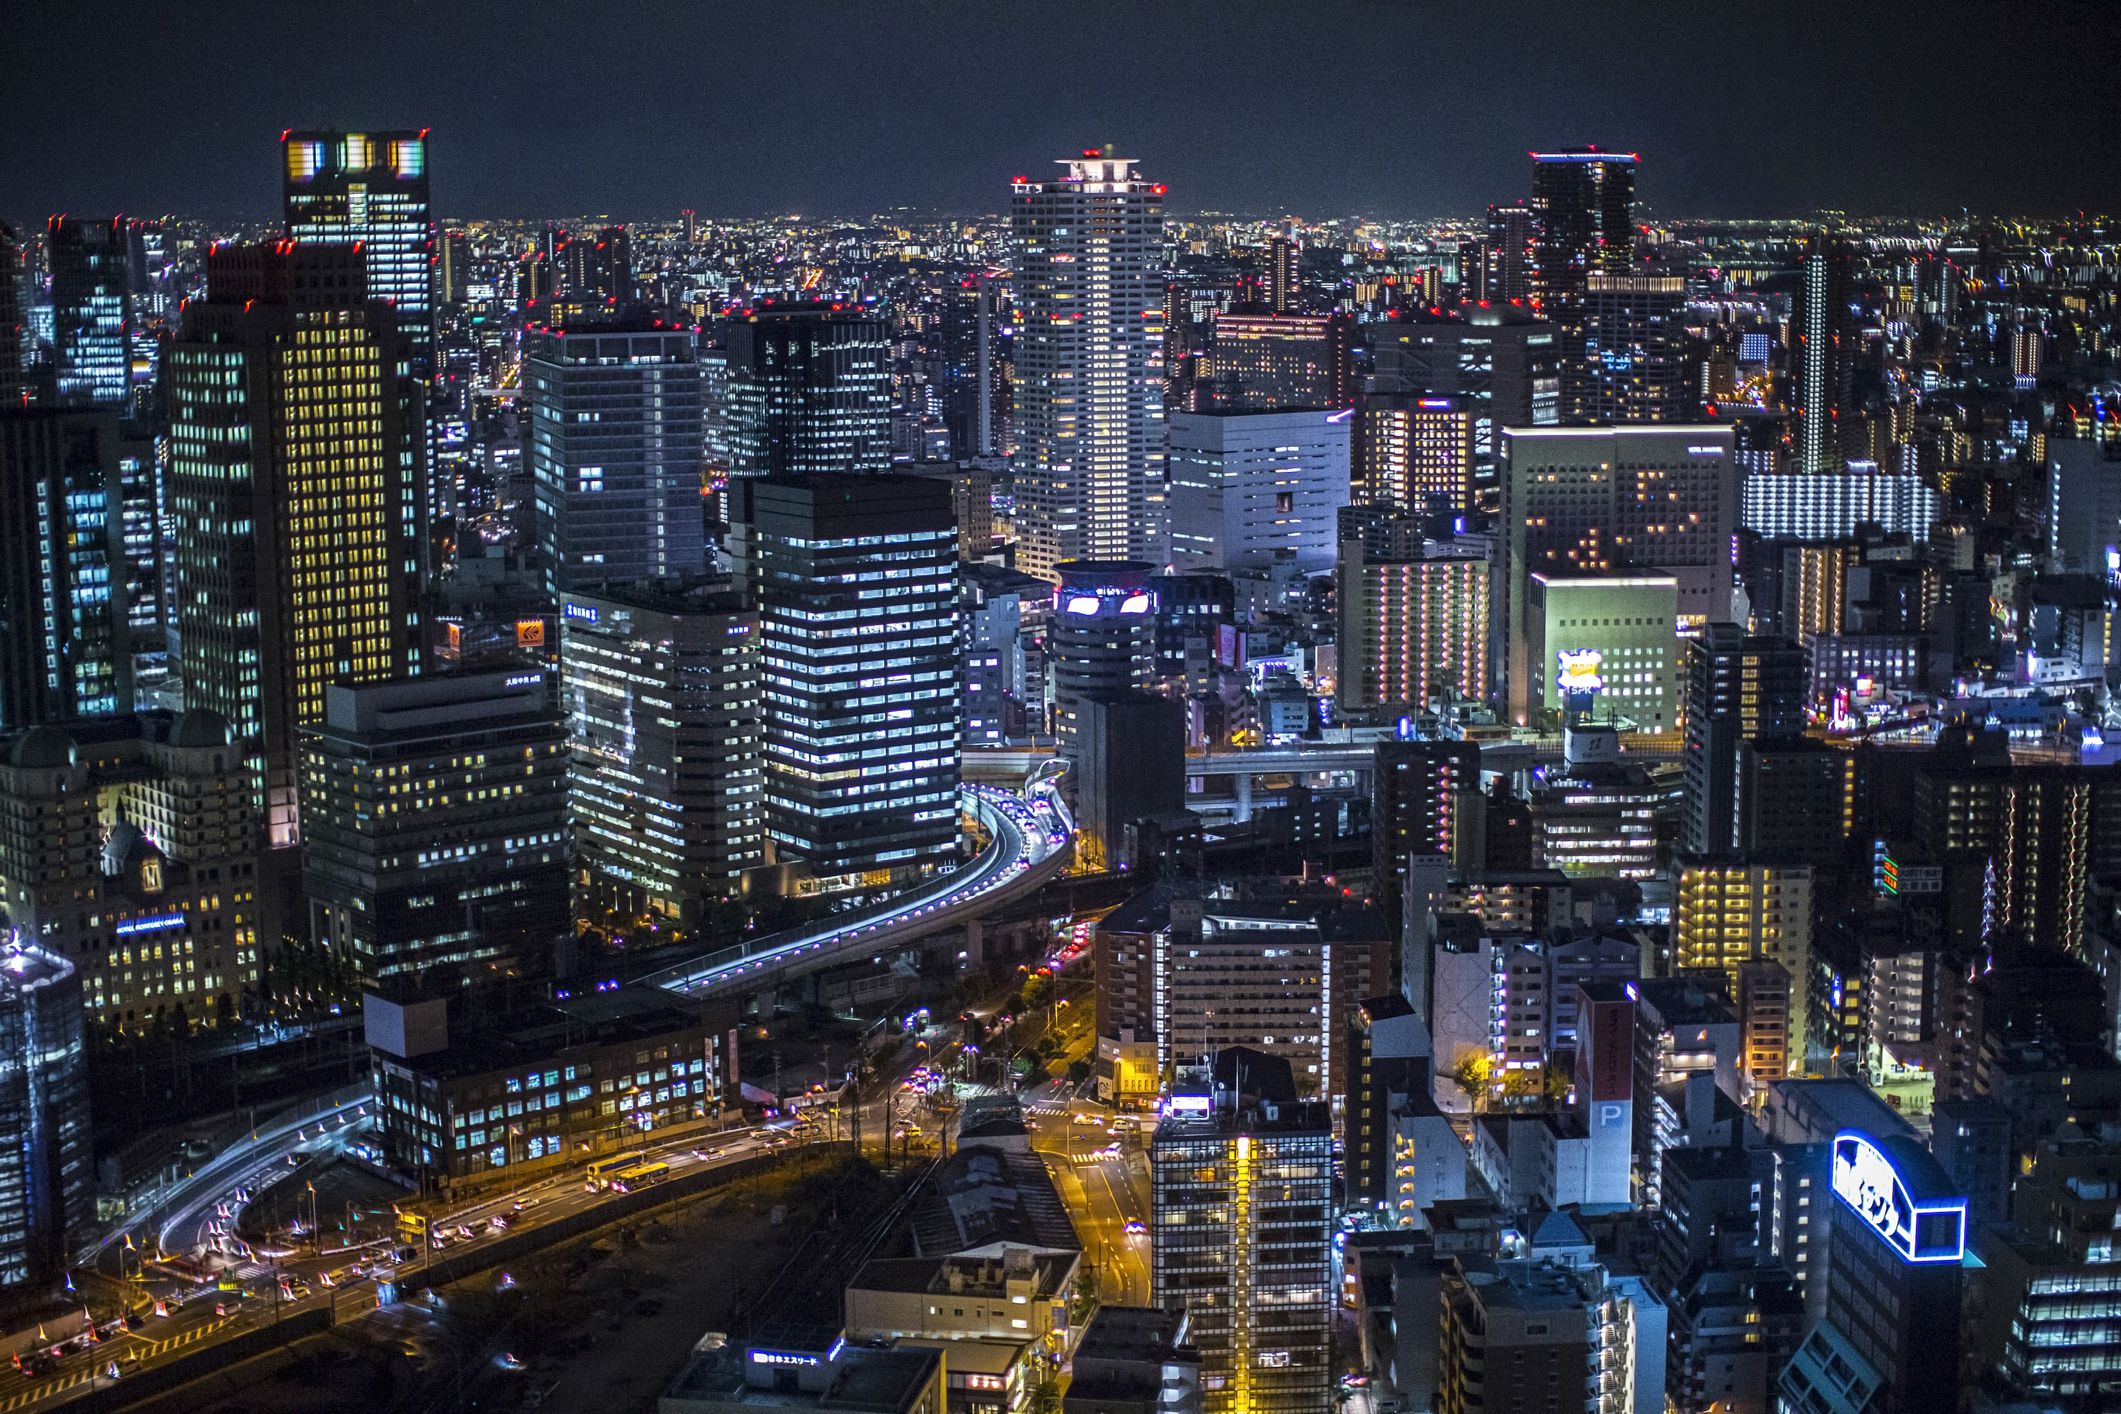 High angle view of Osaka city at night. View from Umeda Sky Building